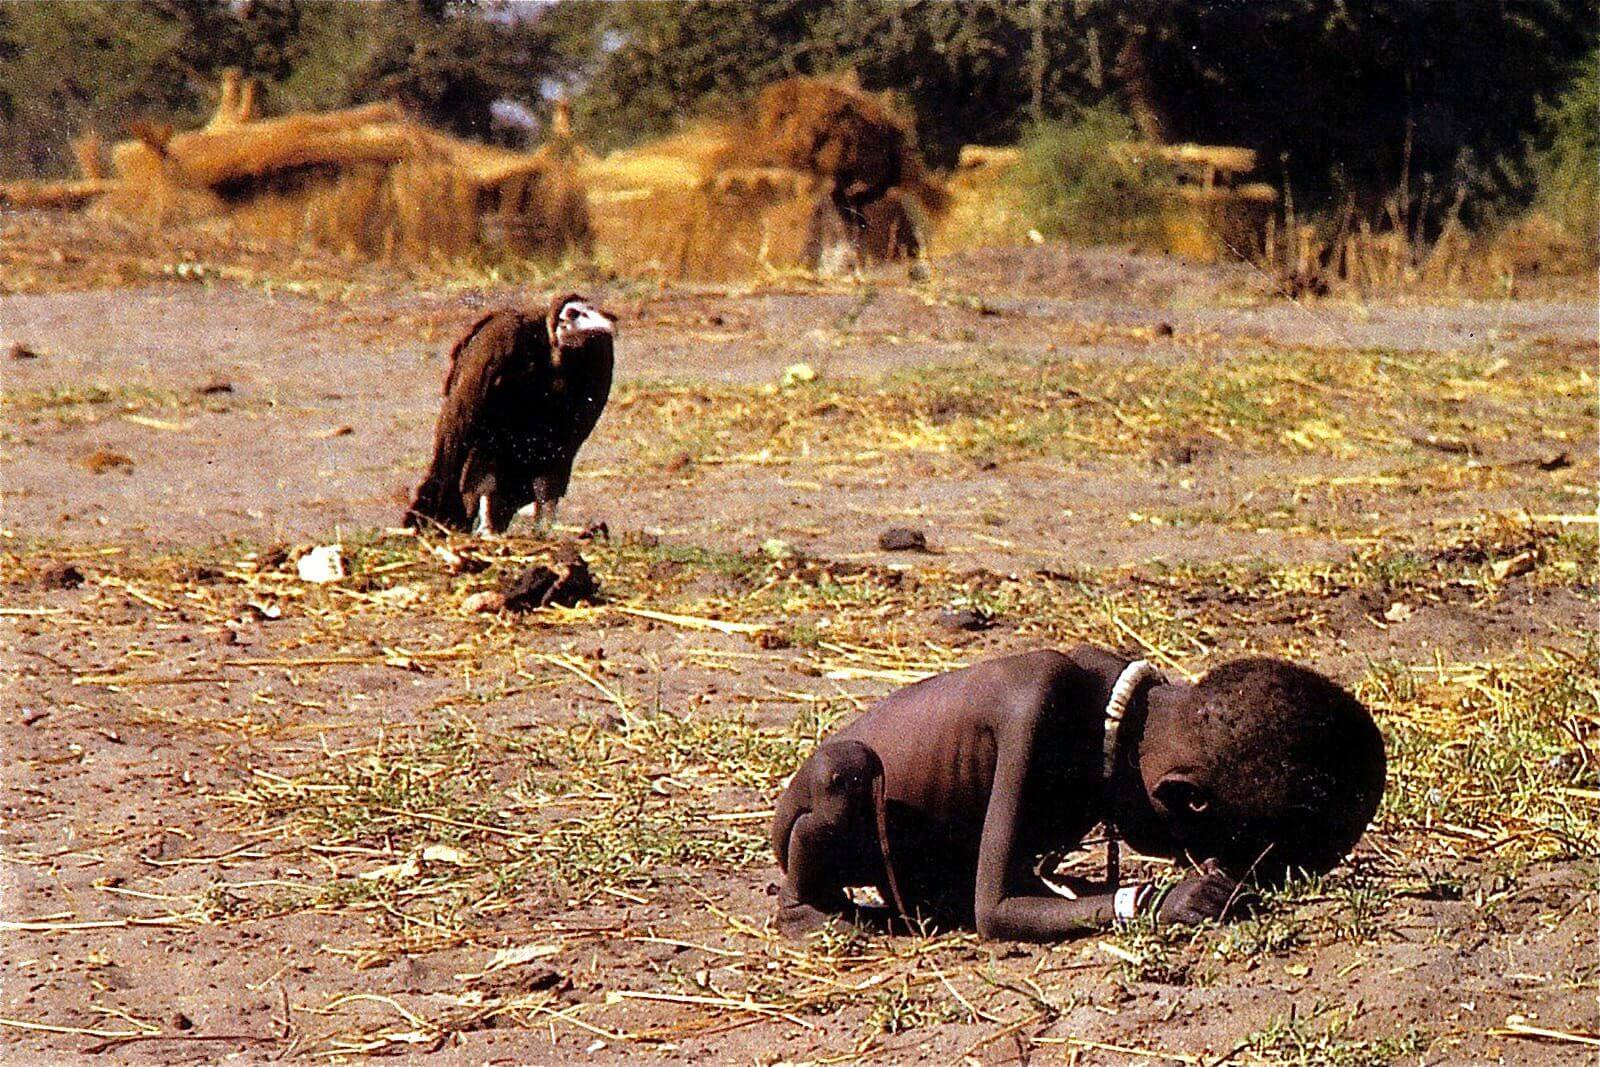 Vulture Stalking a Child Photograph by Kevin Carter